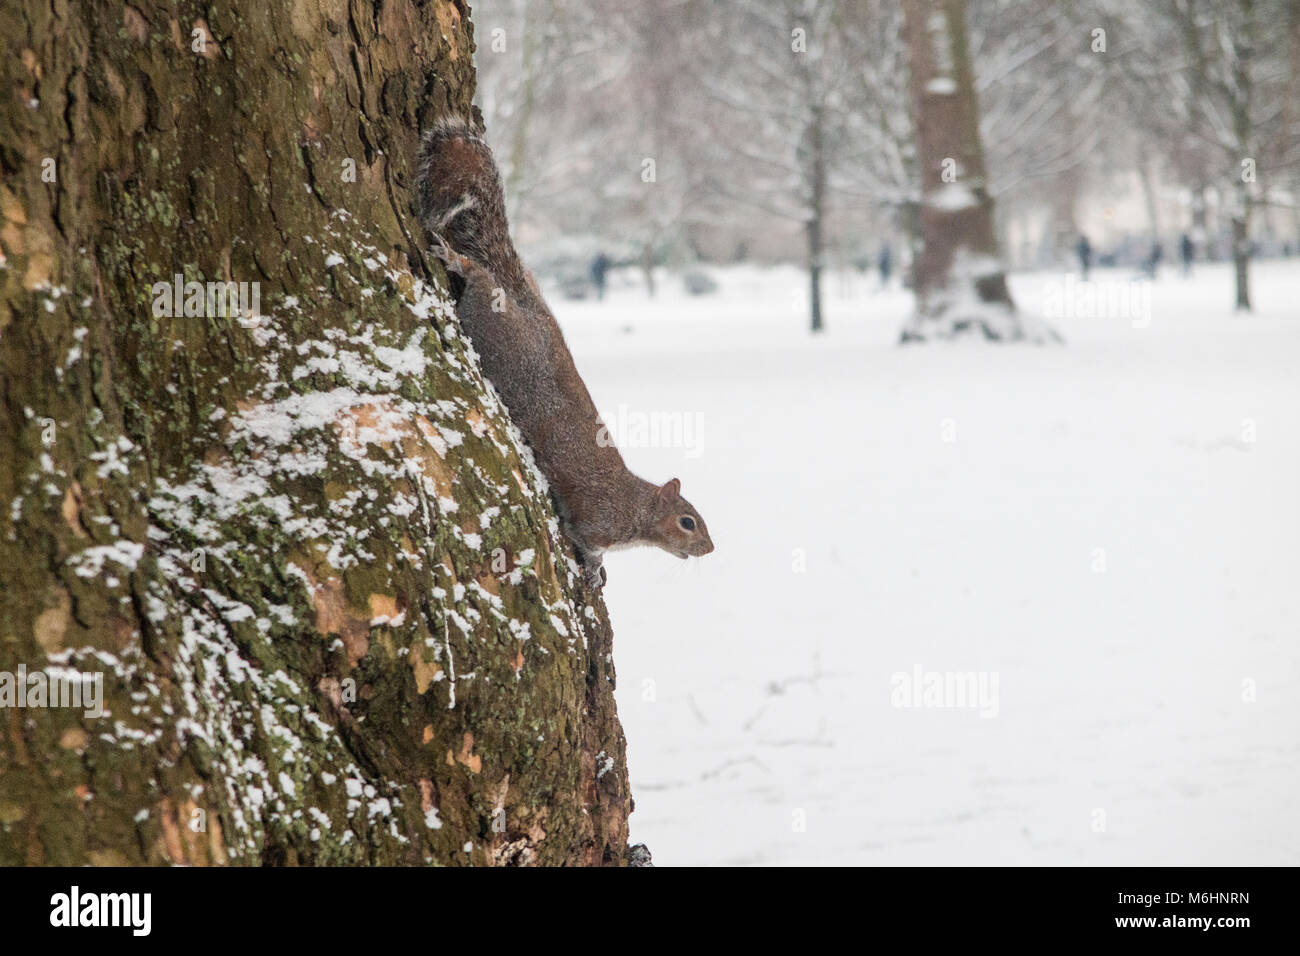 A squirrel in a snow covered tree in St James's Park, London - Stock Image